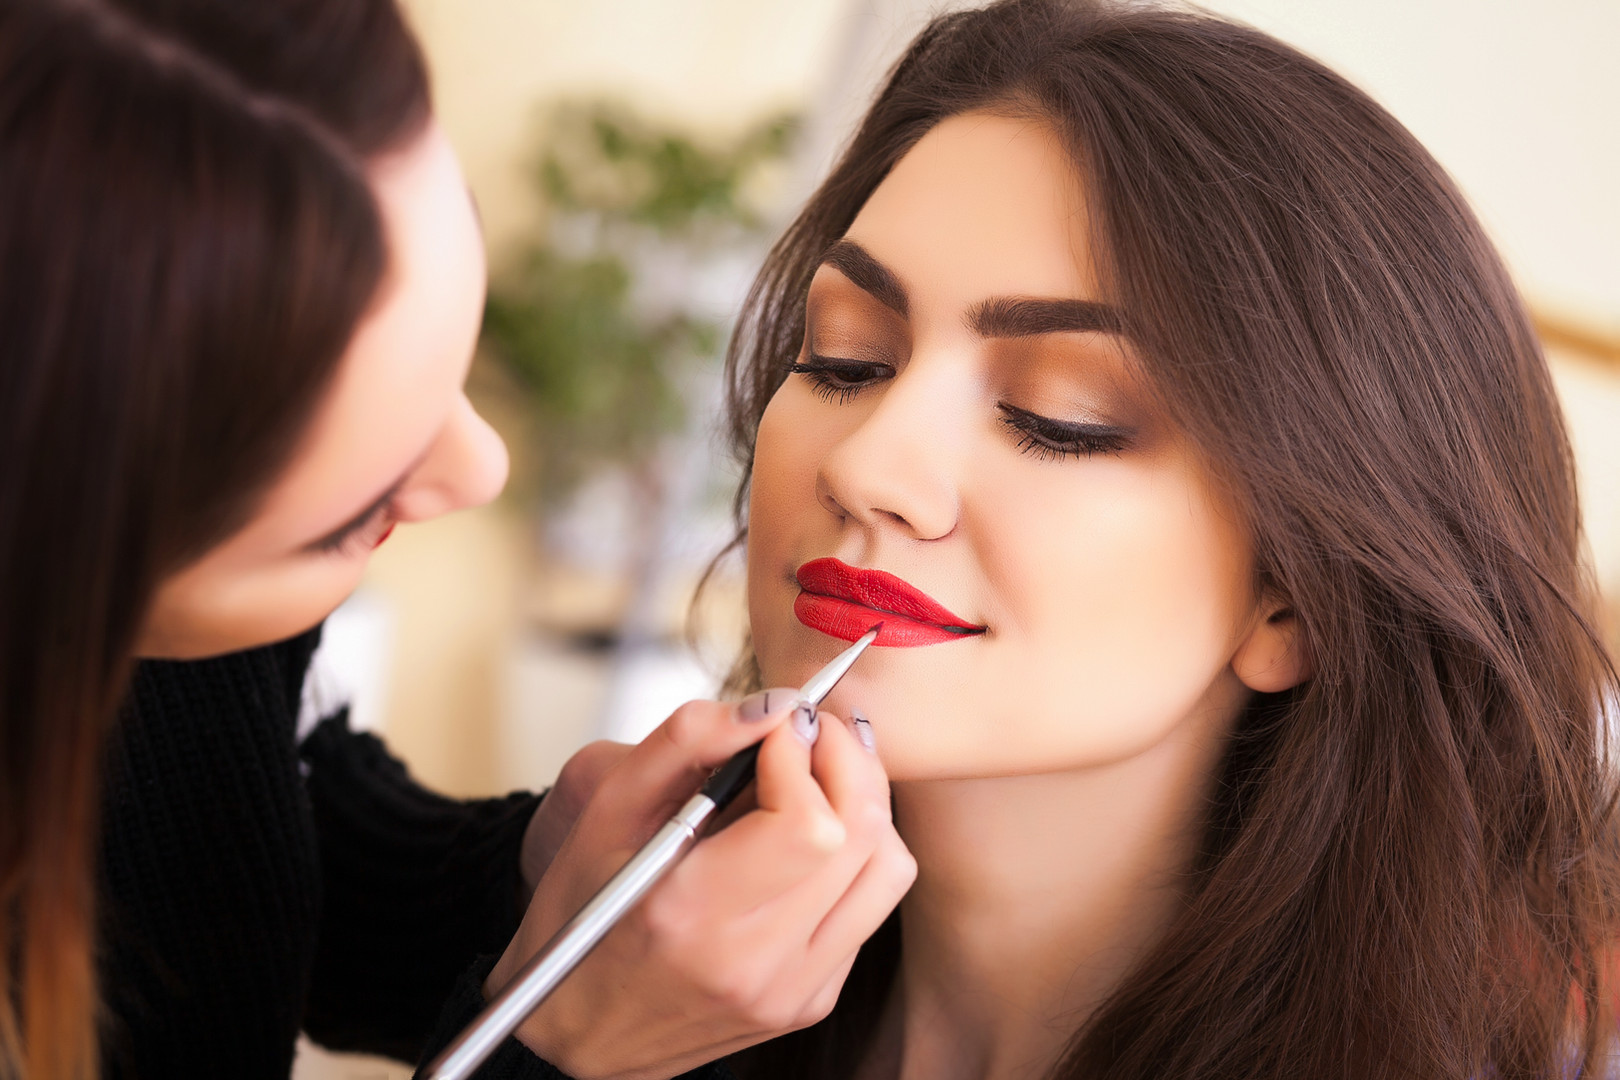 make-up artist doing make-up girl in the